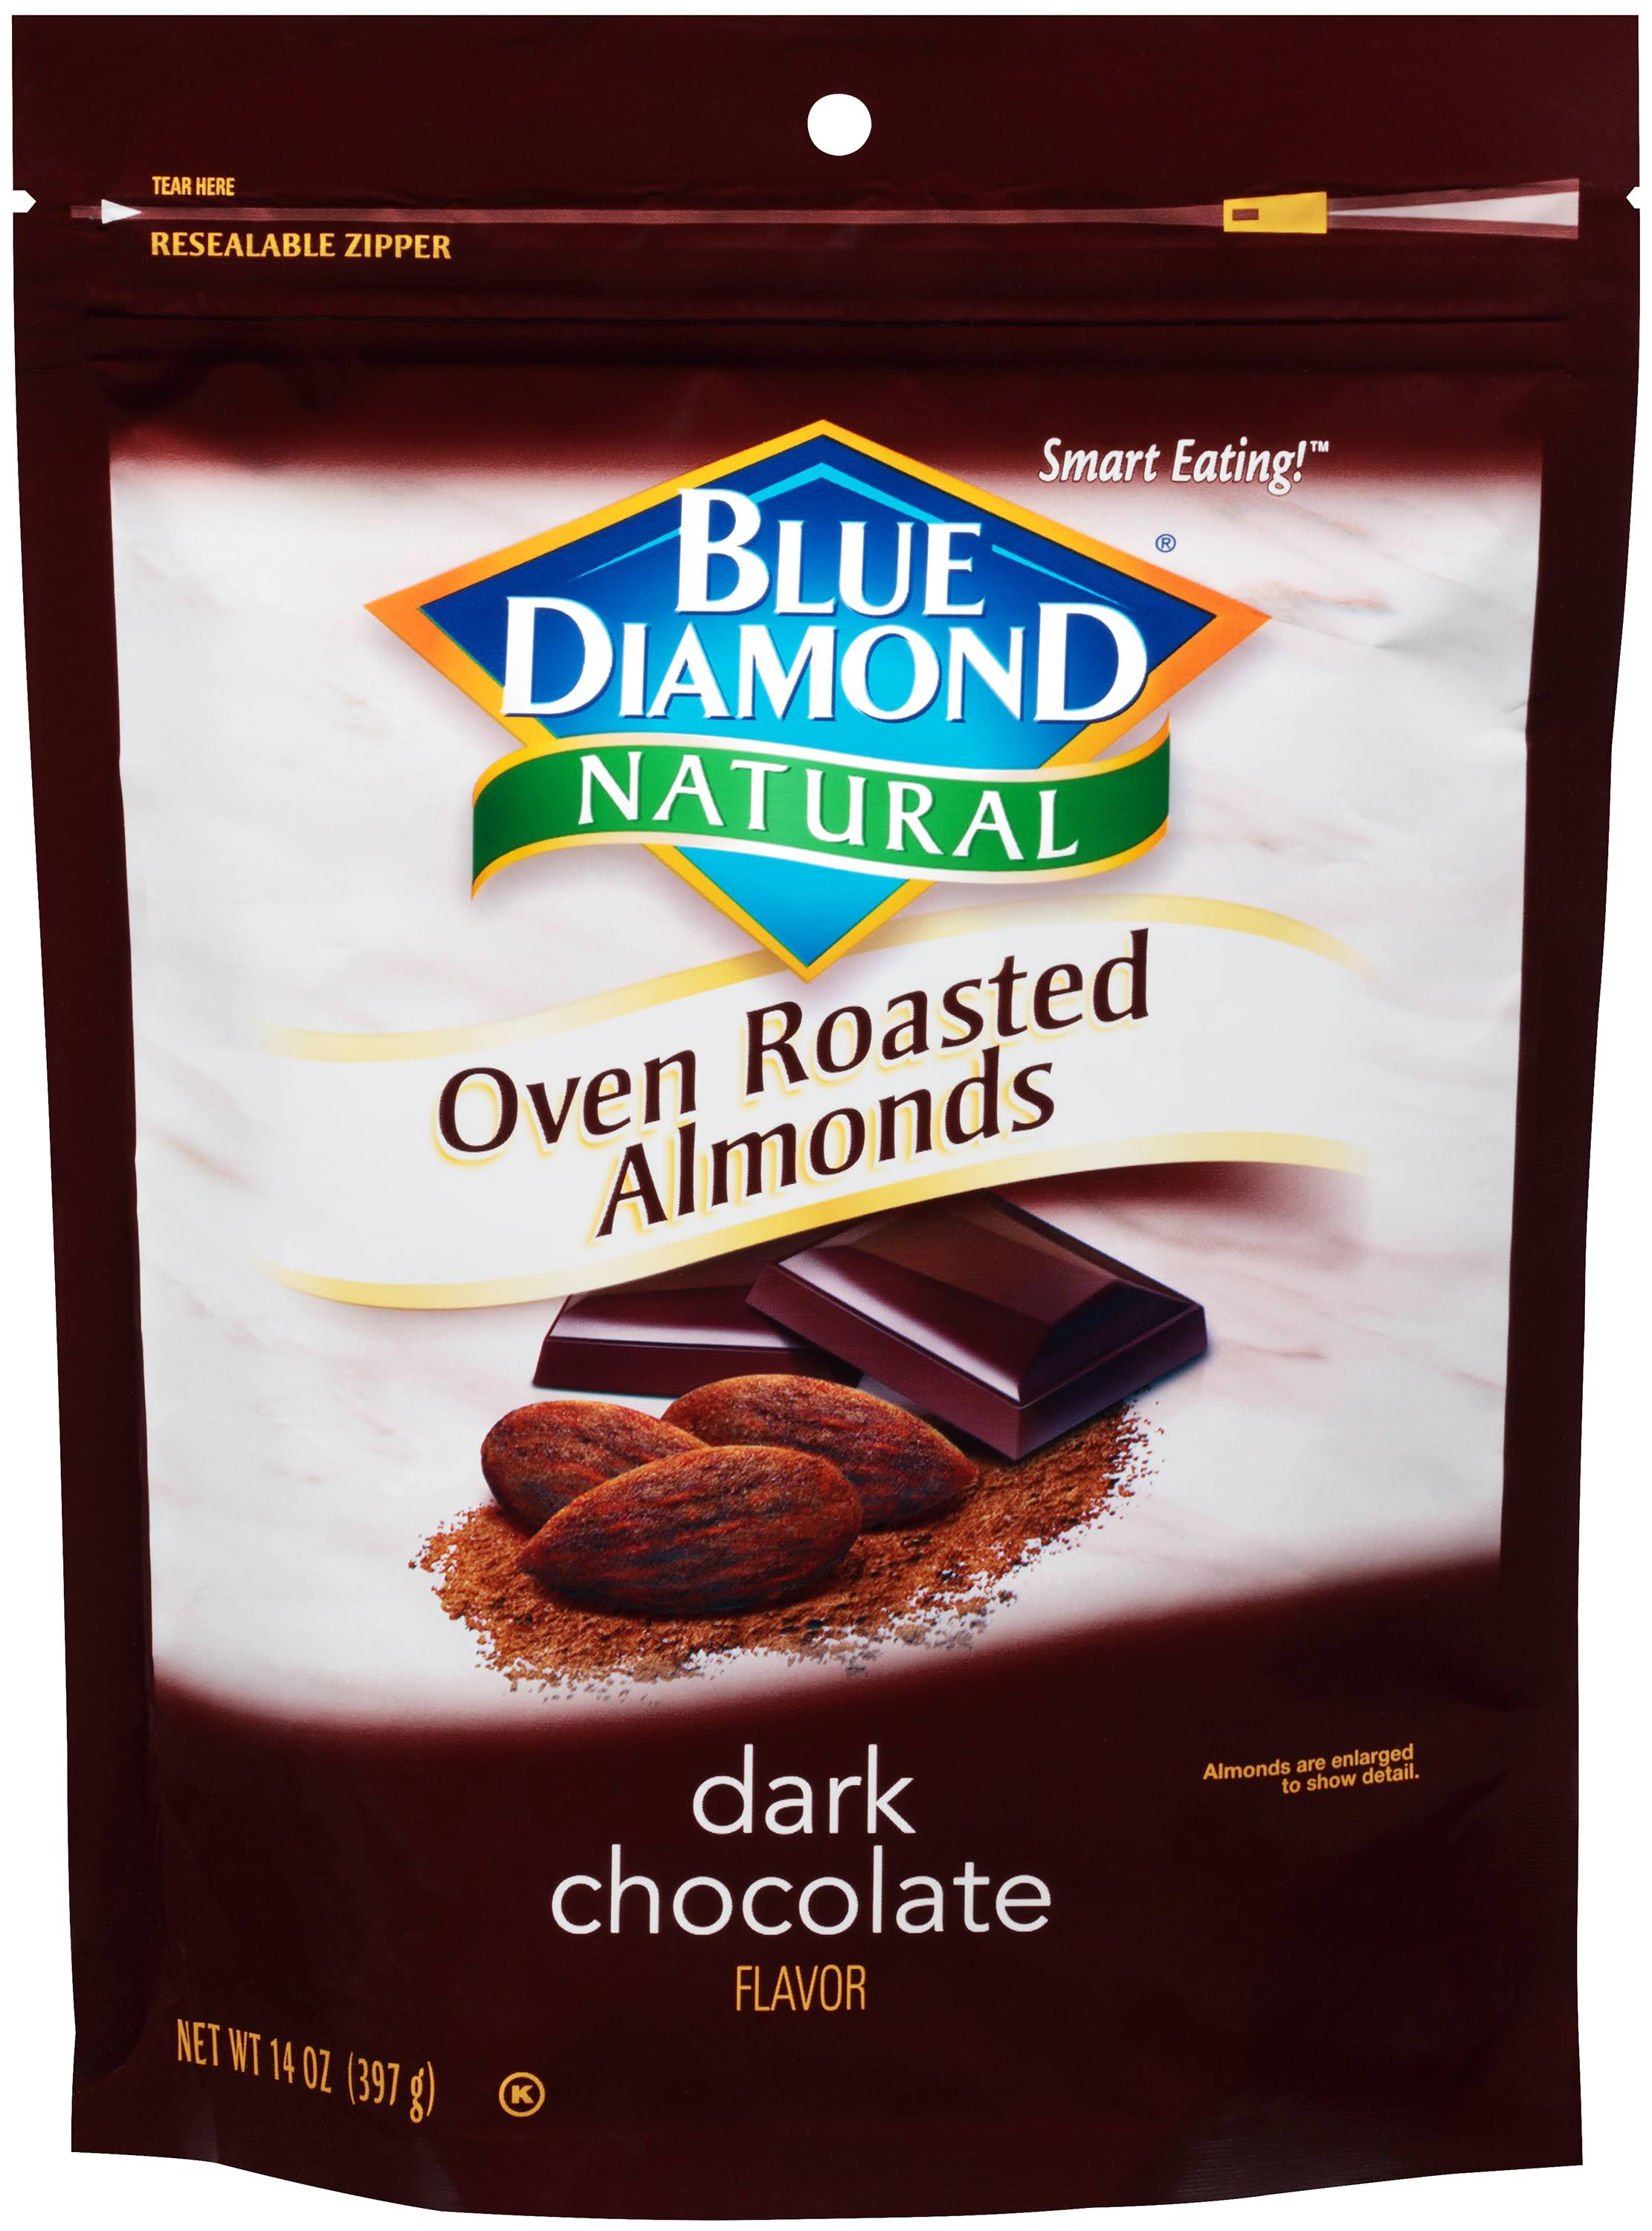 Blue Diamond Oven Roasted Almonds - Dark Chocolate, 14oz